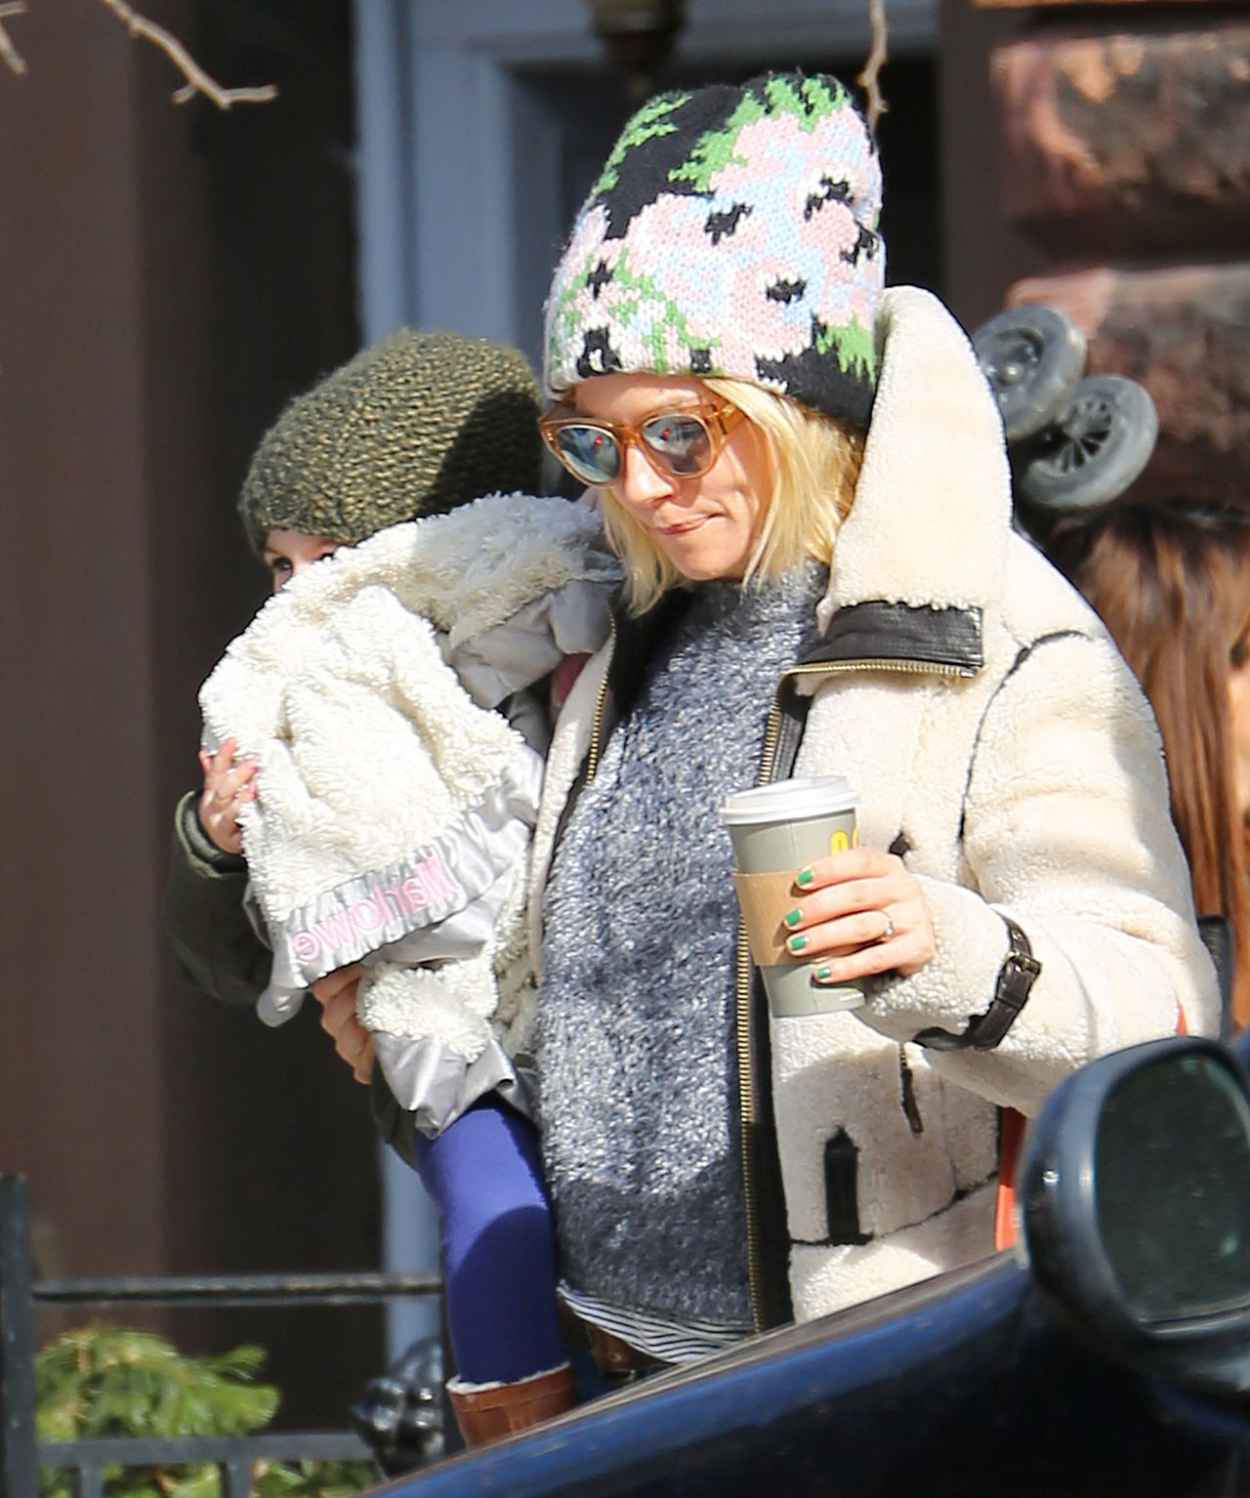 Sienna Miller at the Central Park Zoo in New York City, March 2015-1